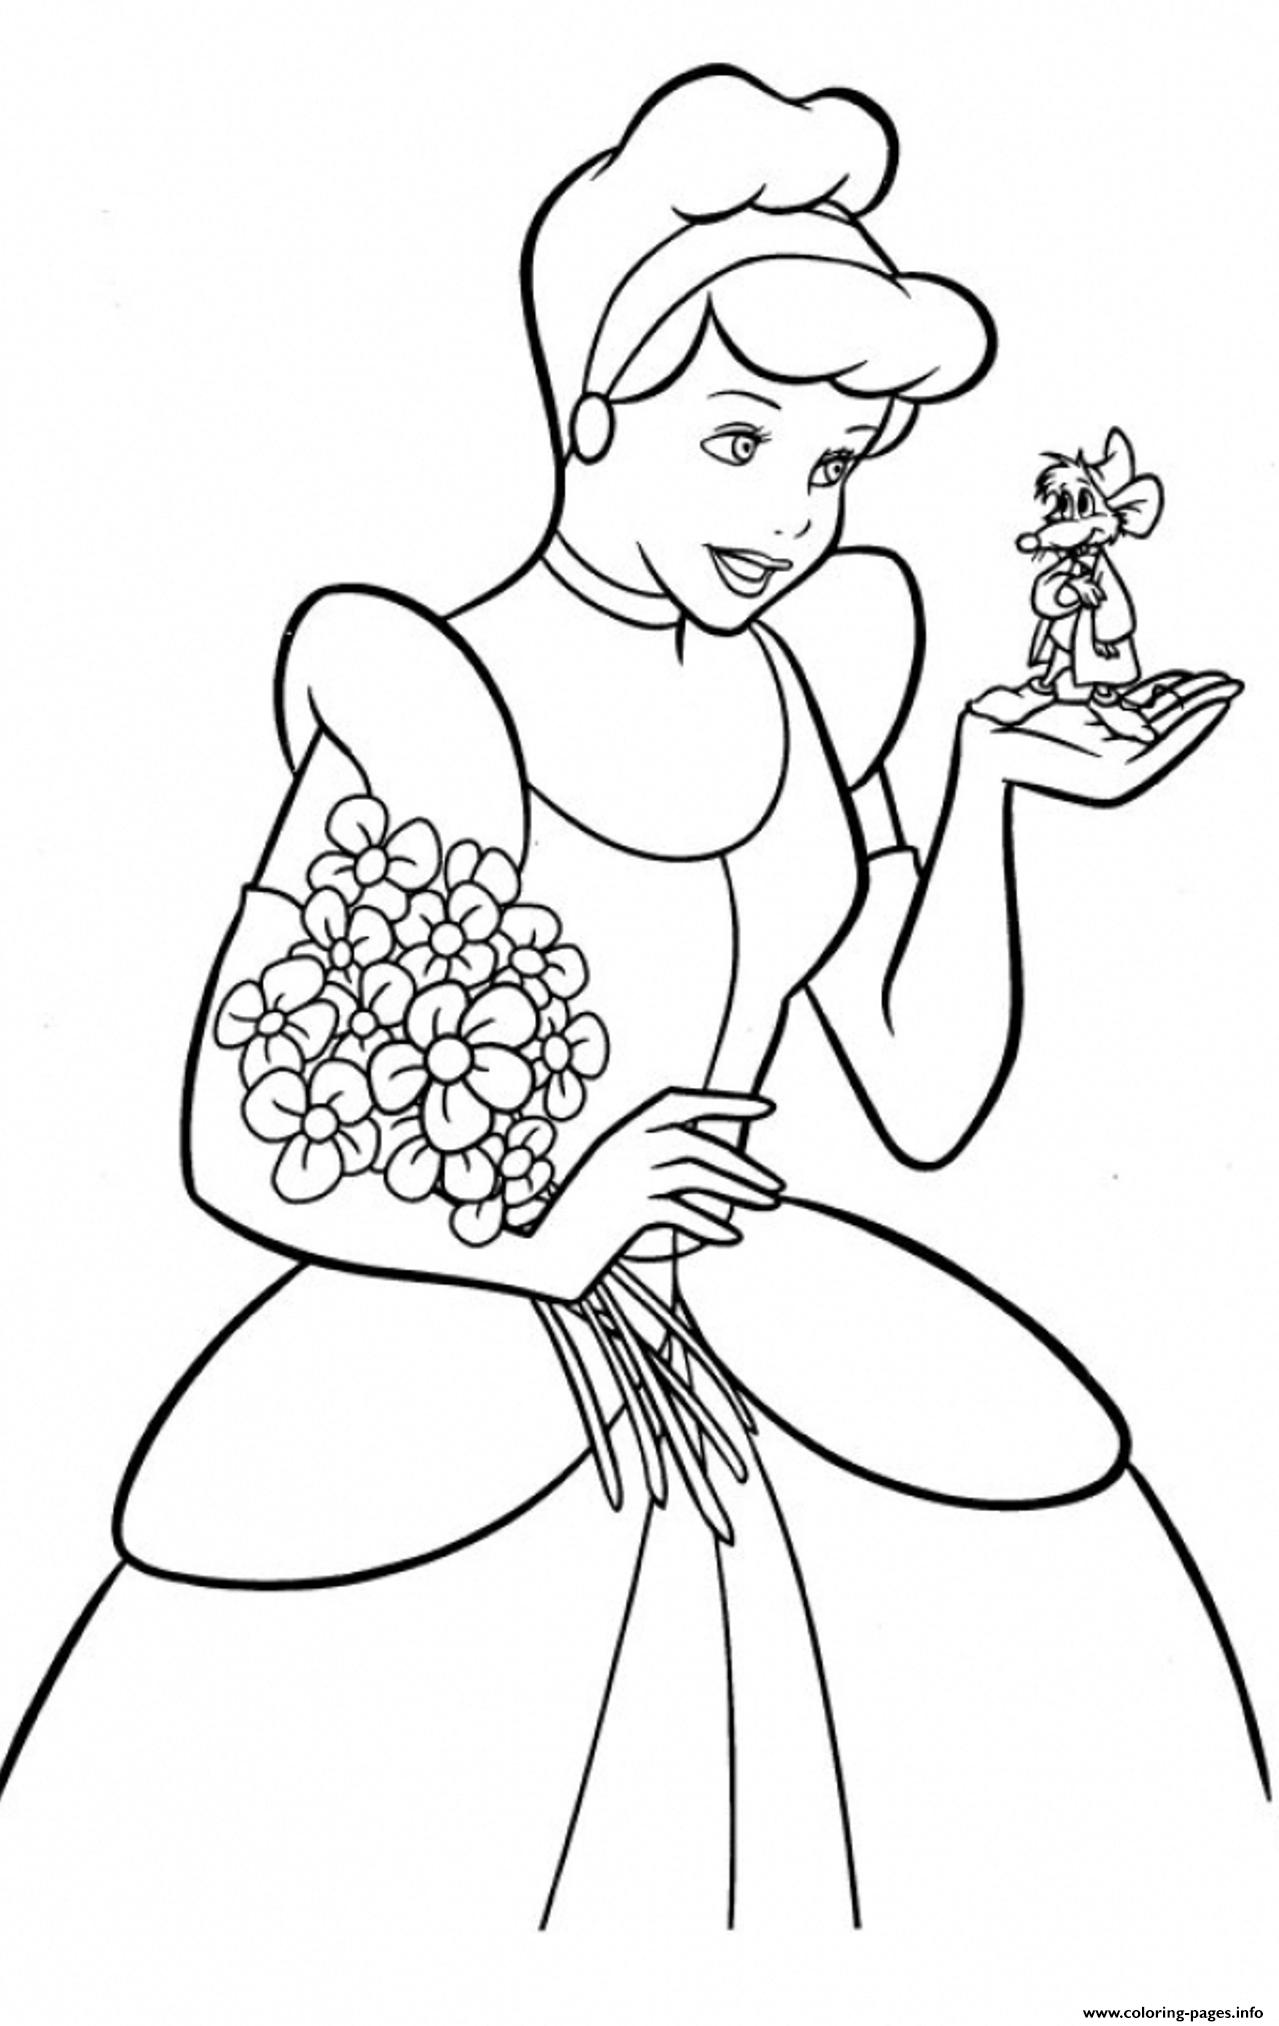 toddler printable coloring pages toddler printable coloring pages toddler coloring pages printable